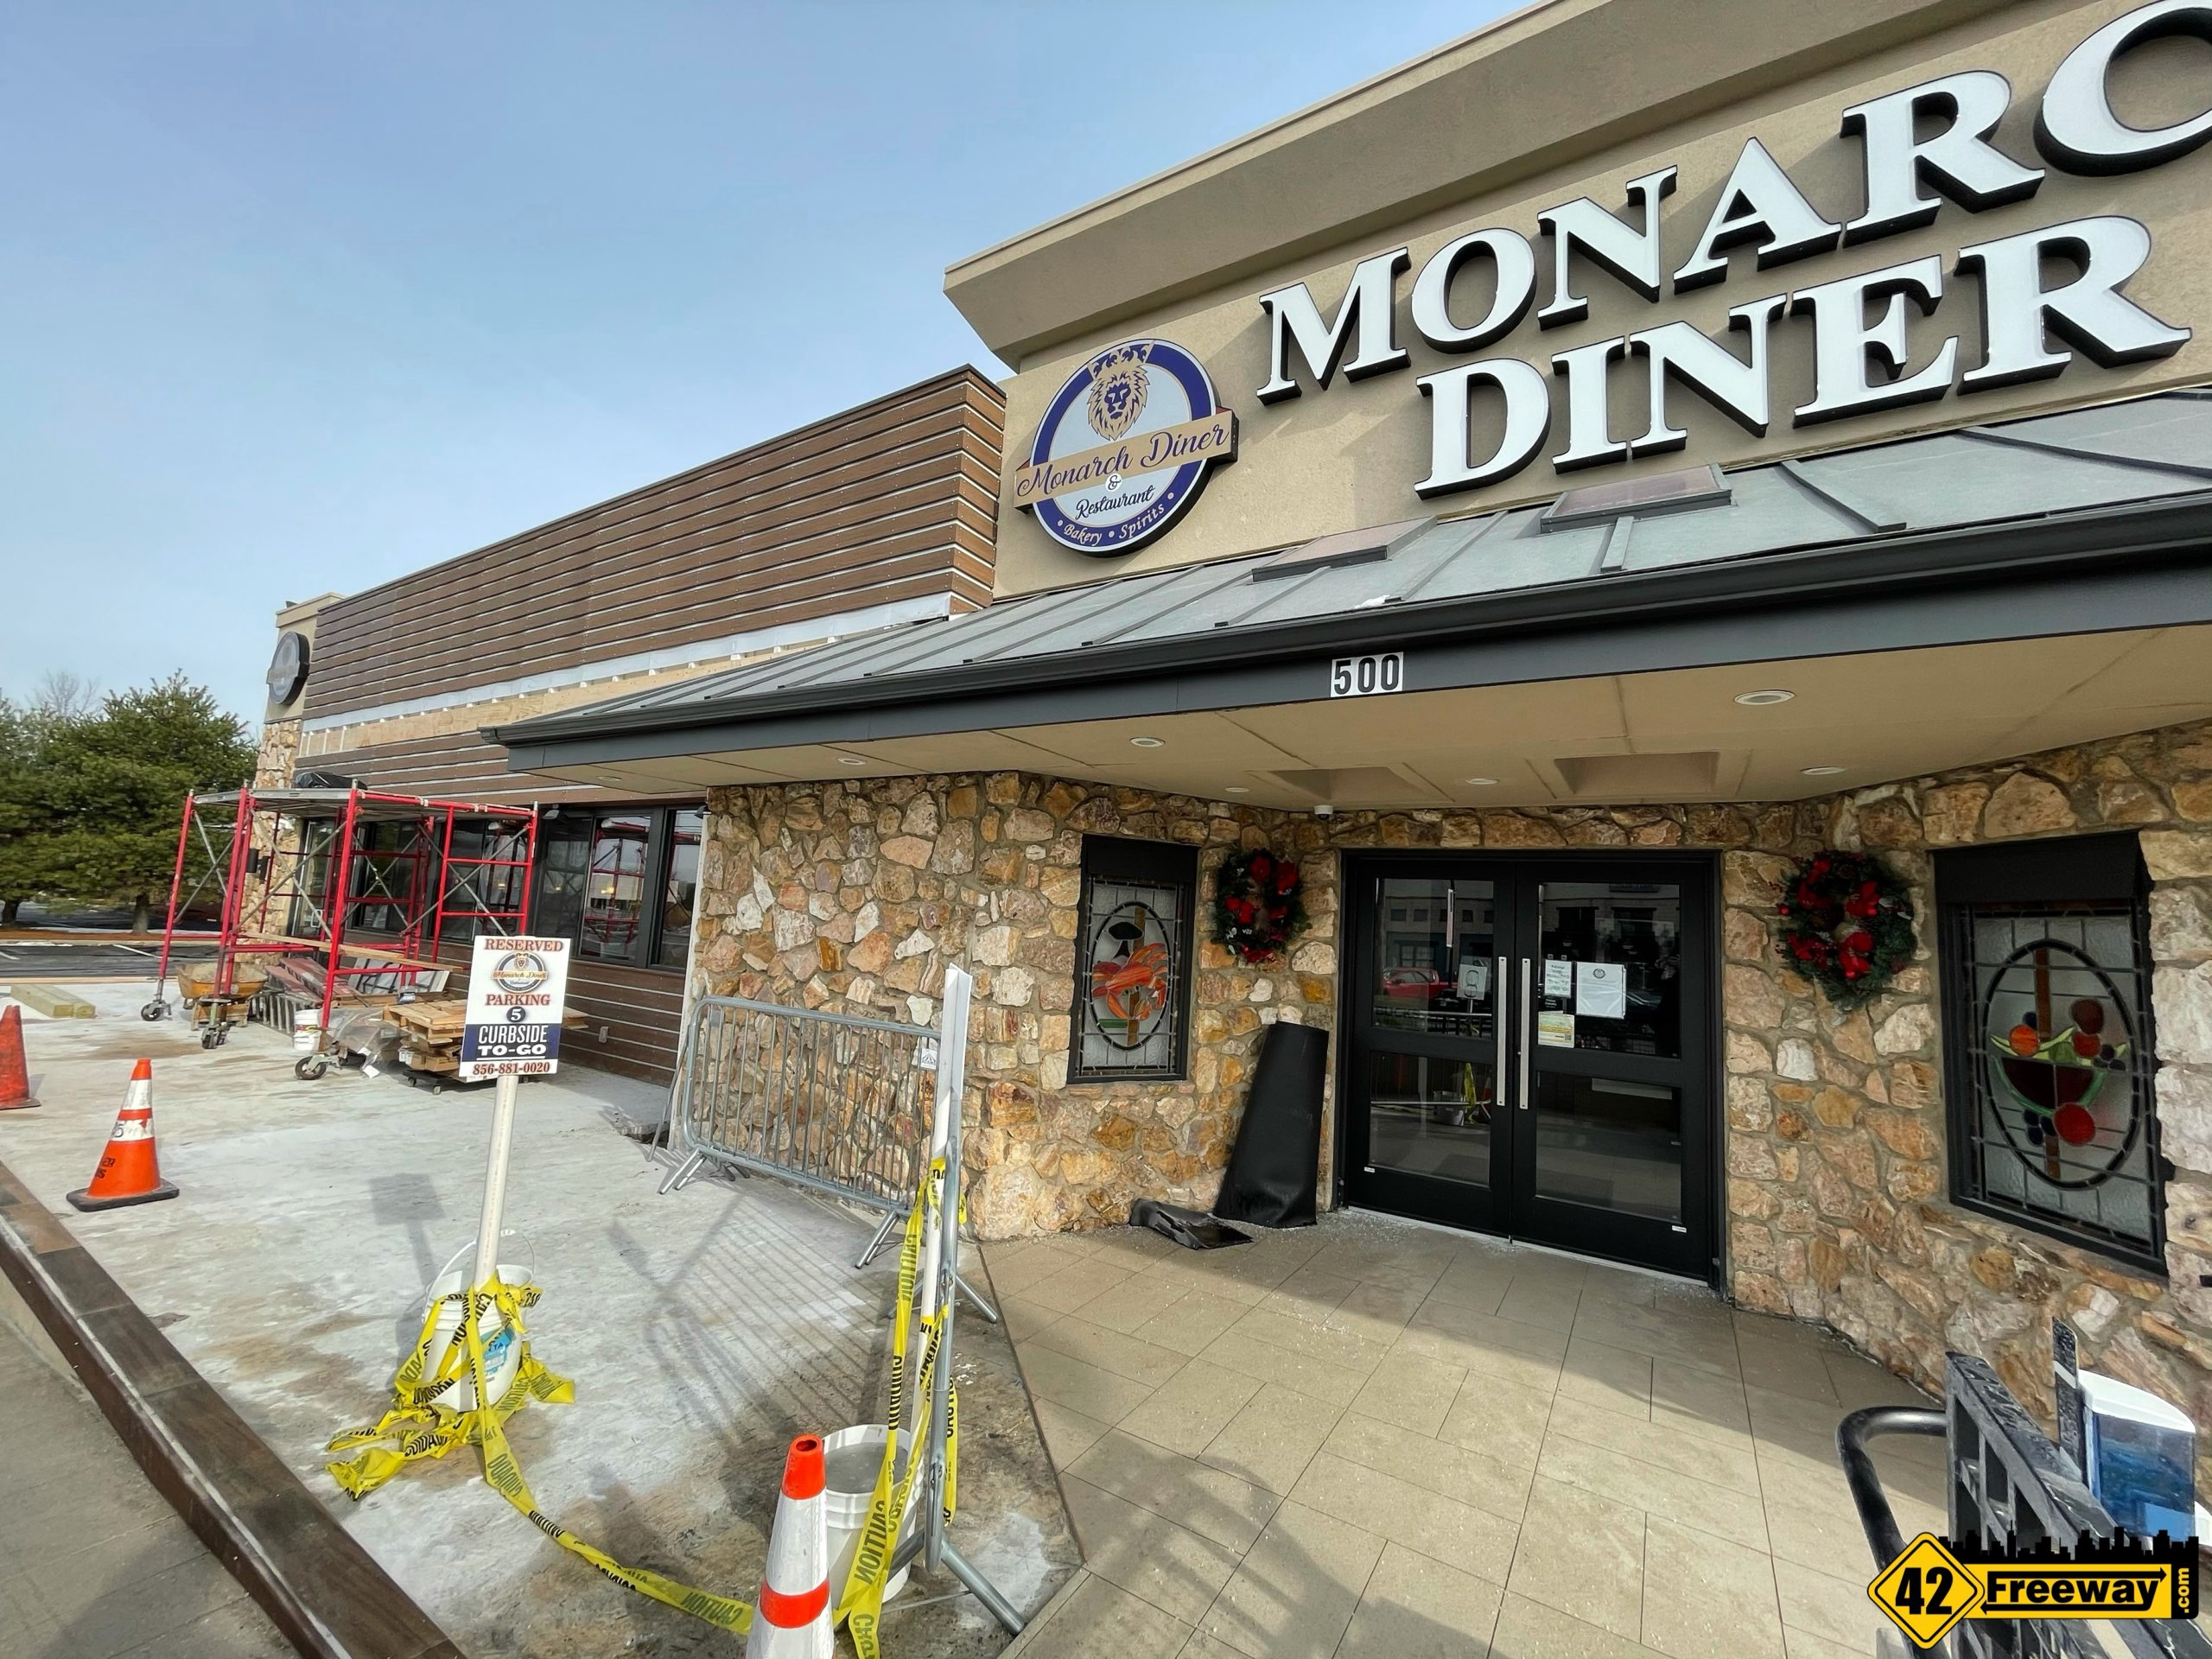 Monarch Diner Glassboro Upgrading Patio to 4 Season Room with Flexible Open Air Options